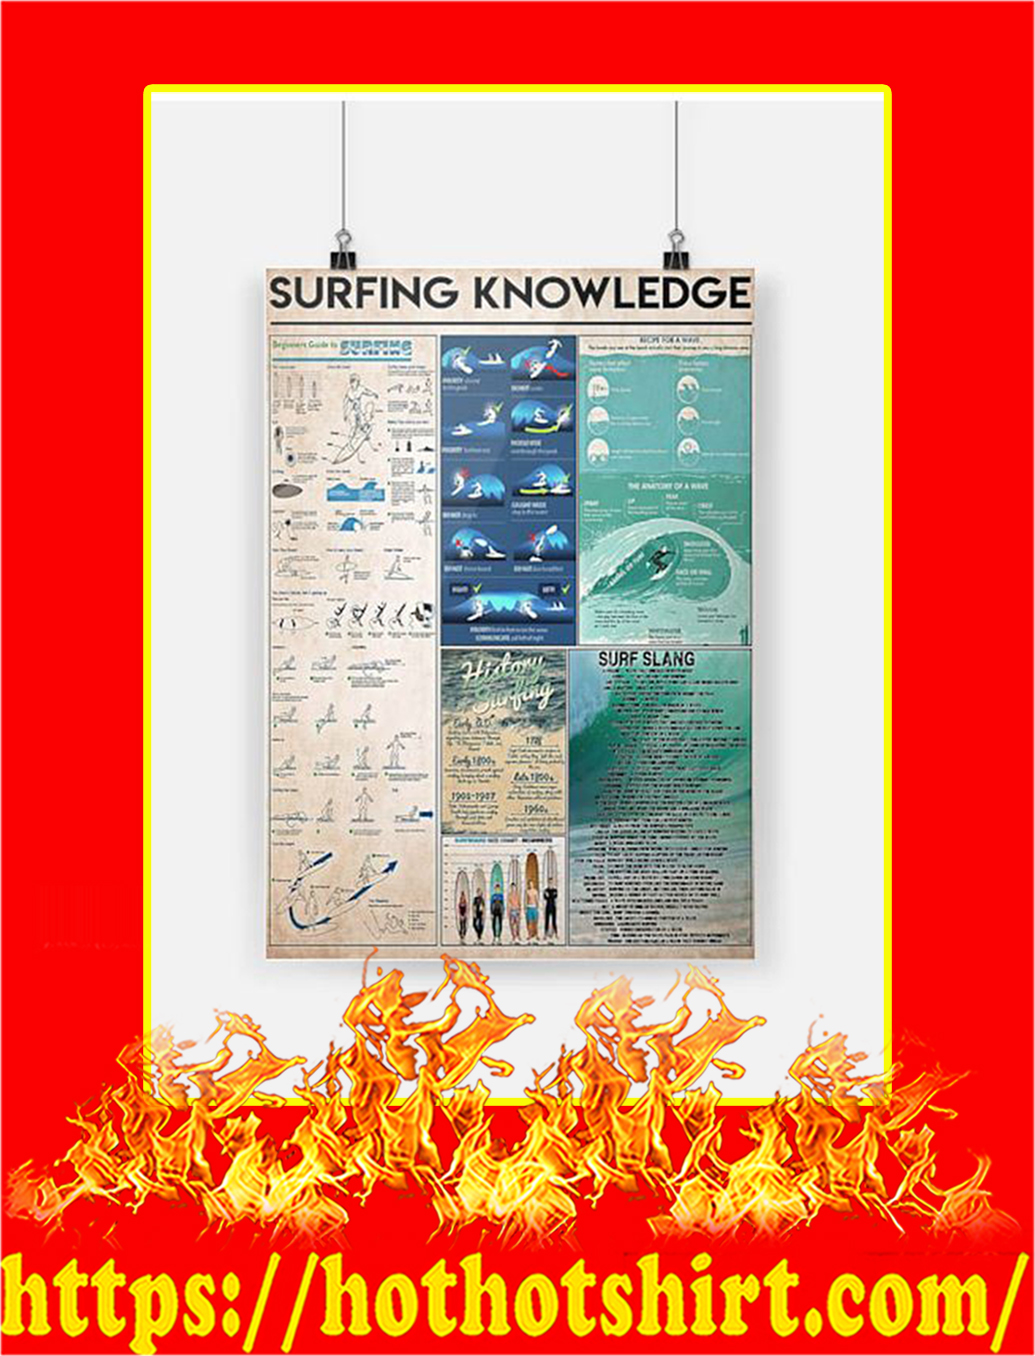 Surfing knowledge Poster - A2